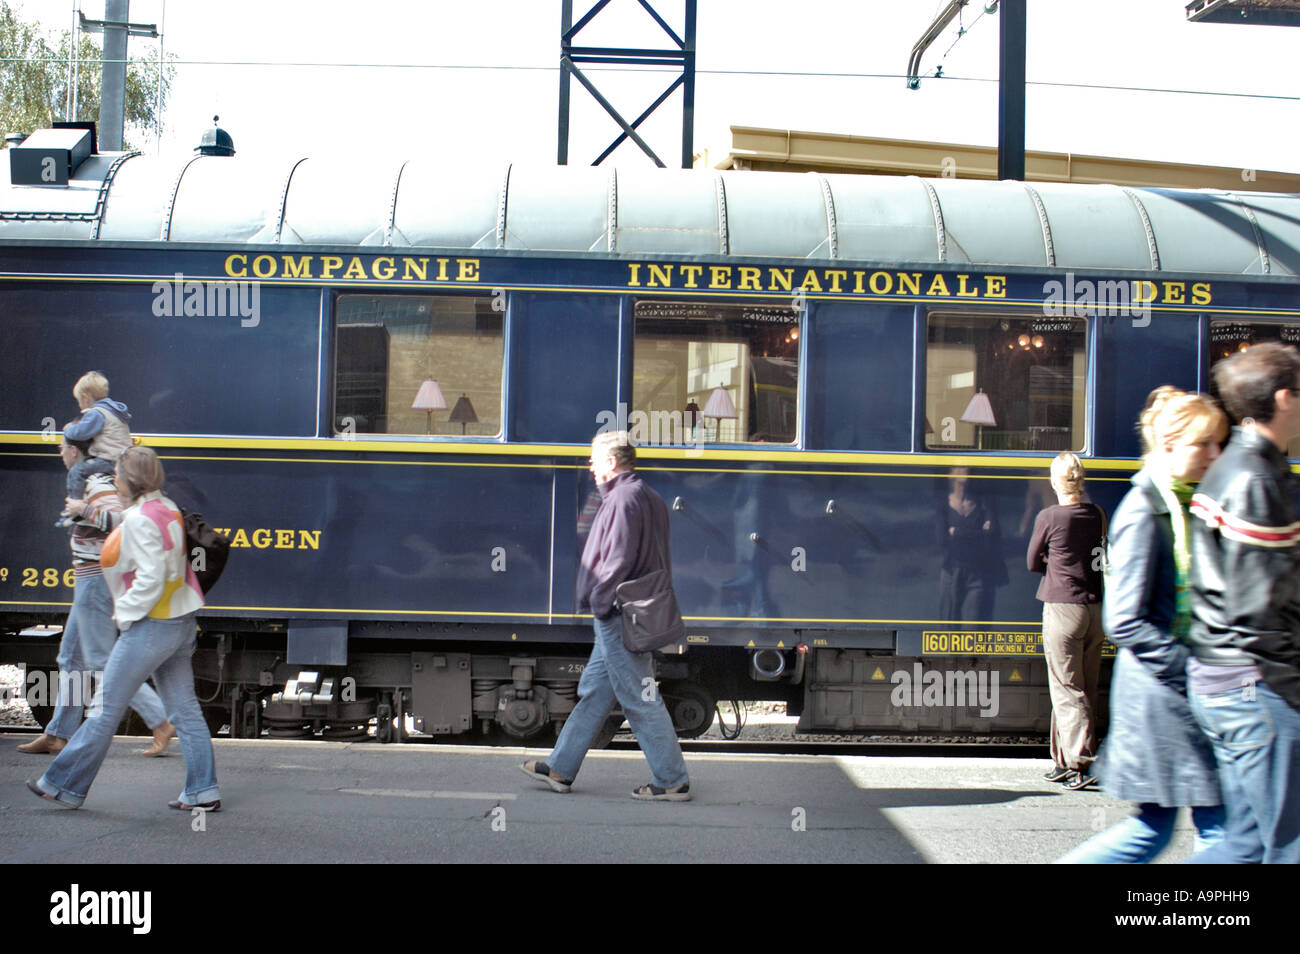 Paris france the orient express train in gare de l for Train tours paris austerlitz